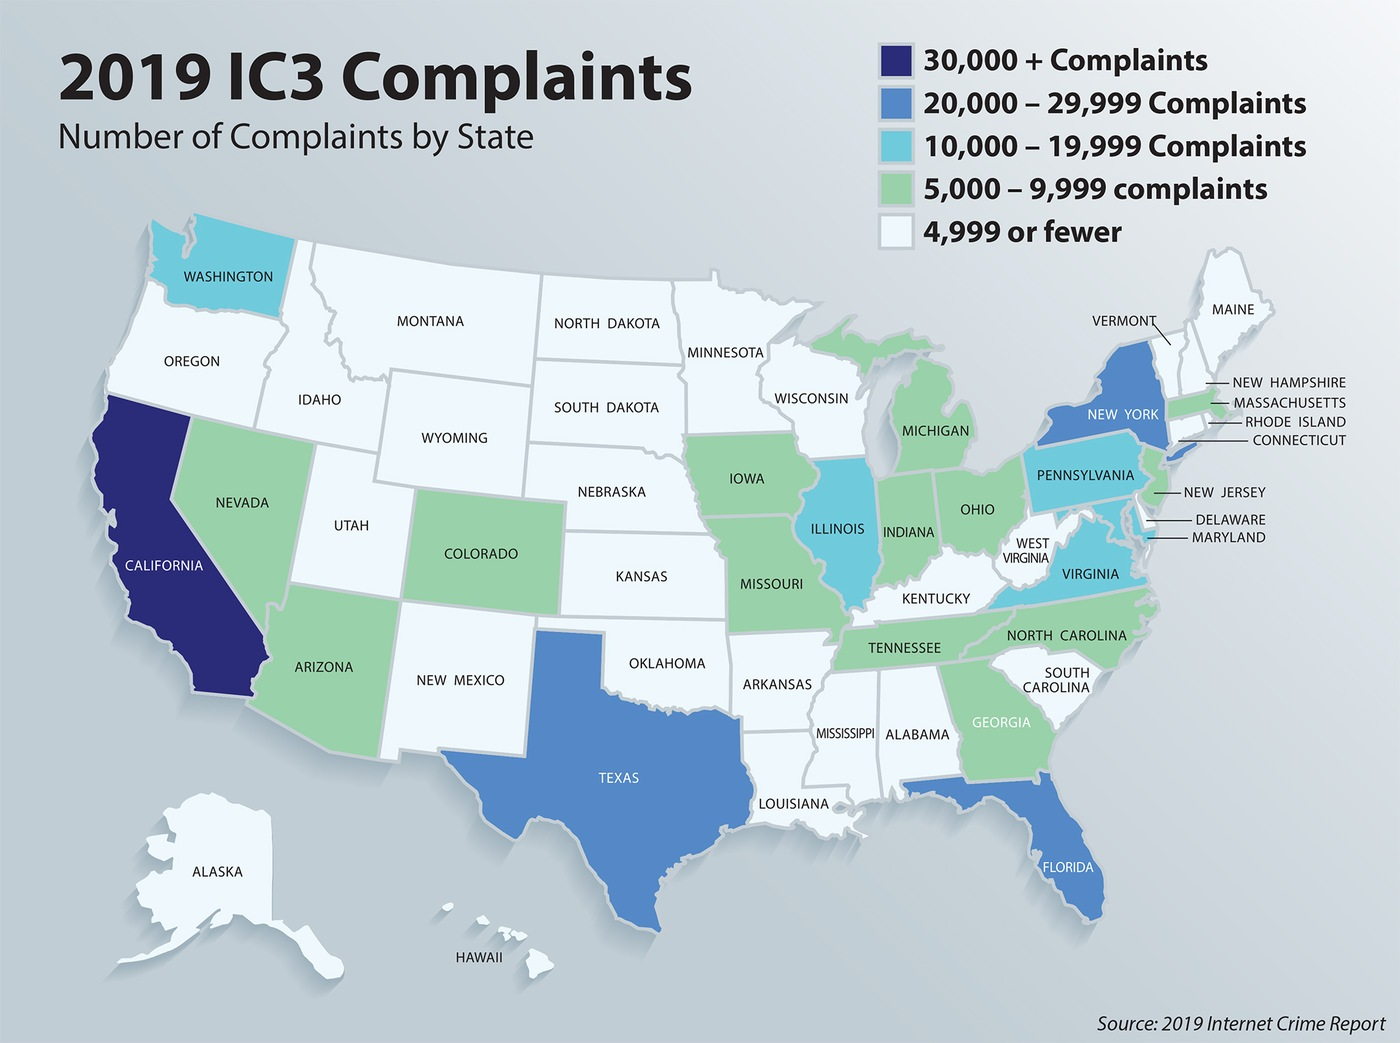 Infographic depicting the number of complaints to the Internet Crime Complaint Center by state in 2019.